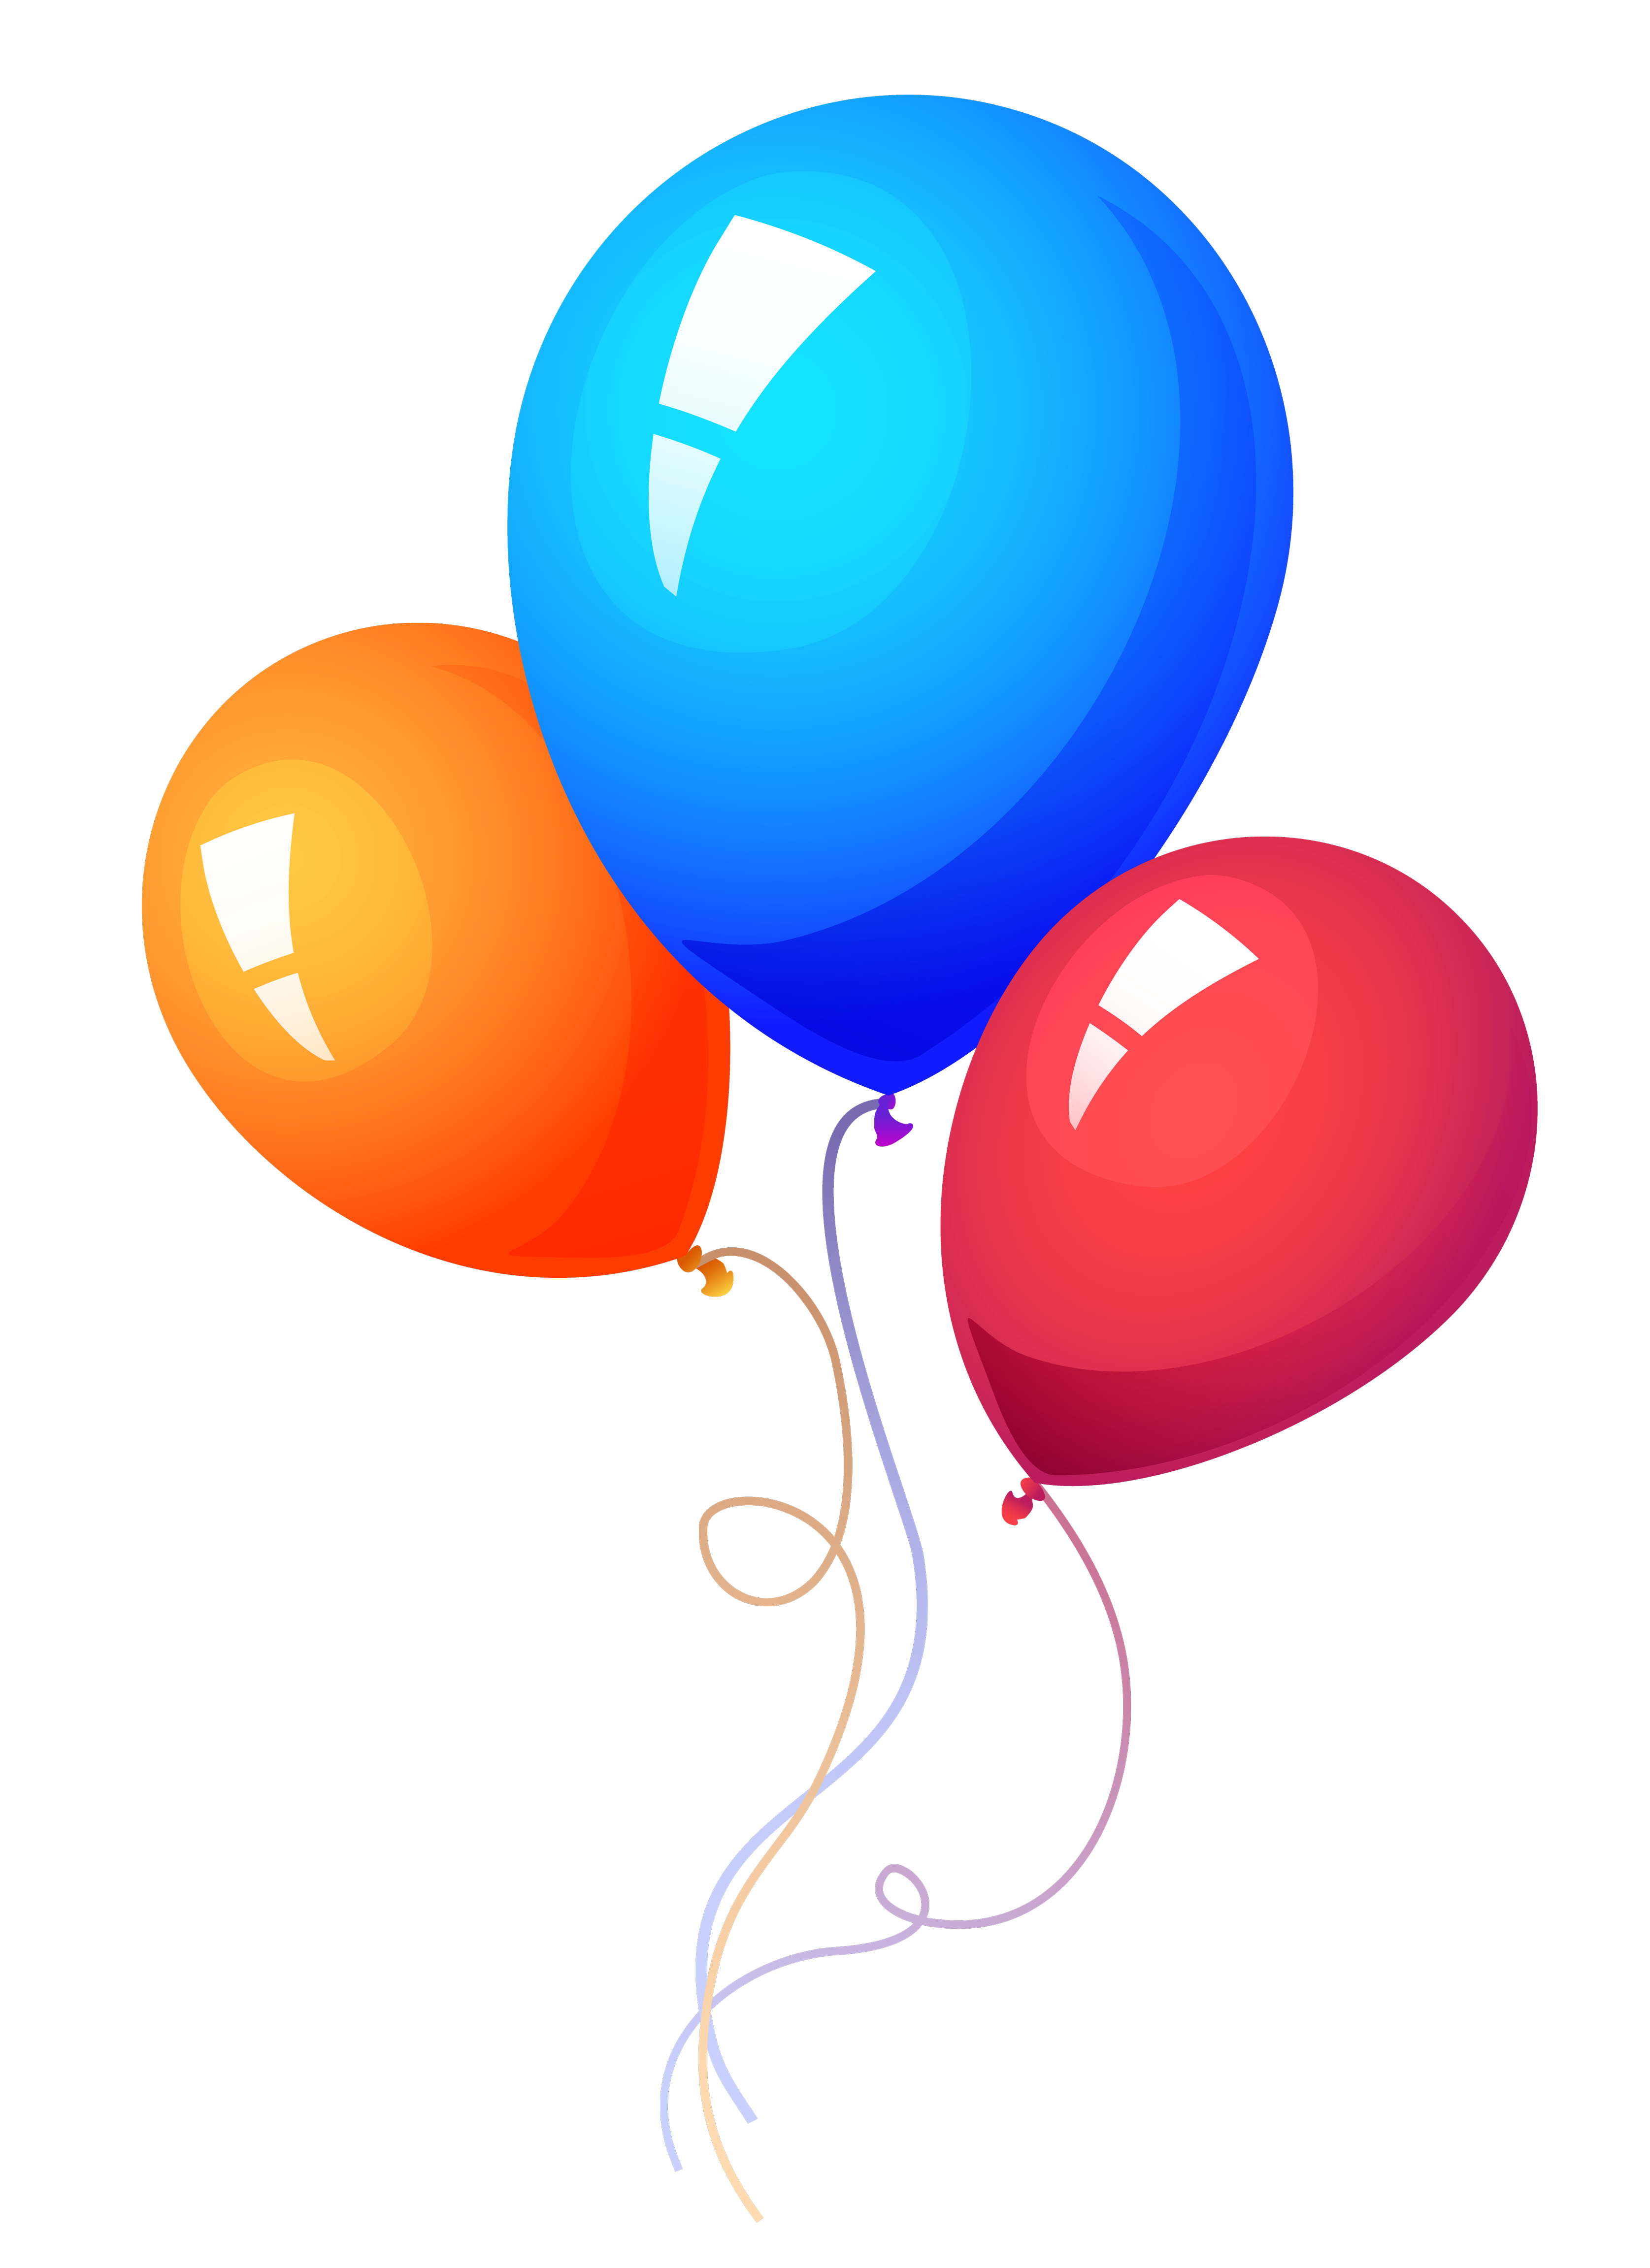 Celebration balloons png. Party balloon images image